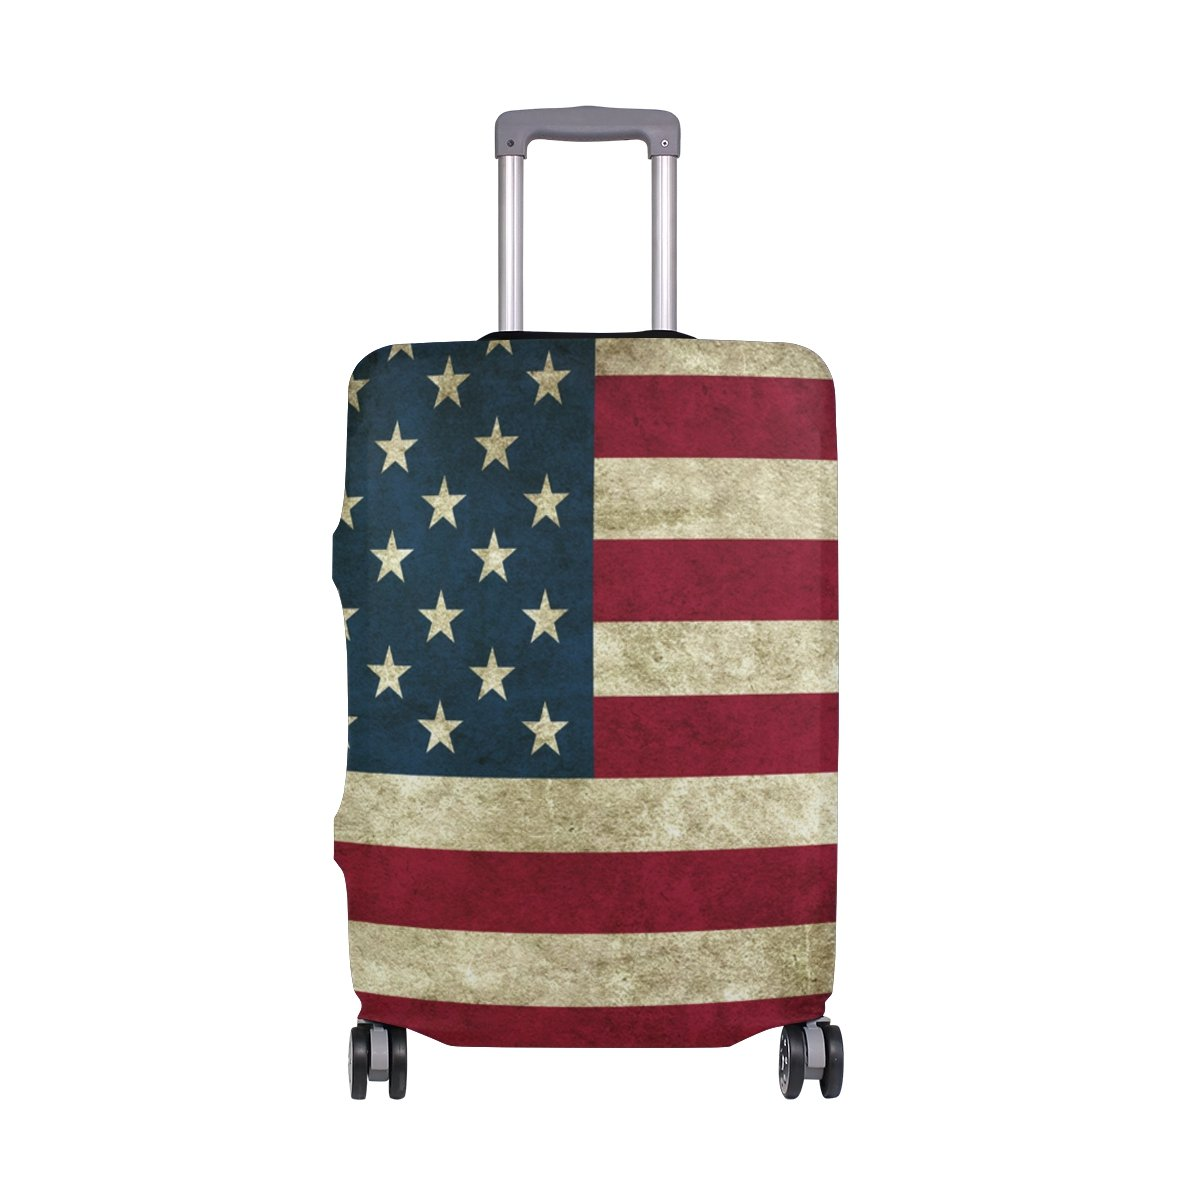 My Daily Vintage American Flag Luggage Cover Fits 24-26 Inch Suitcase Spandex Travel Protector M